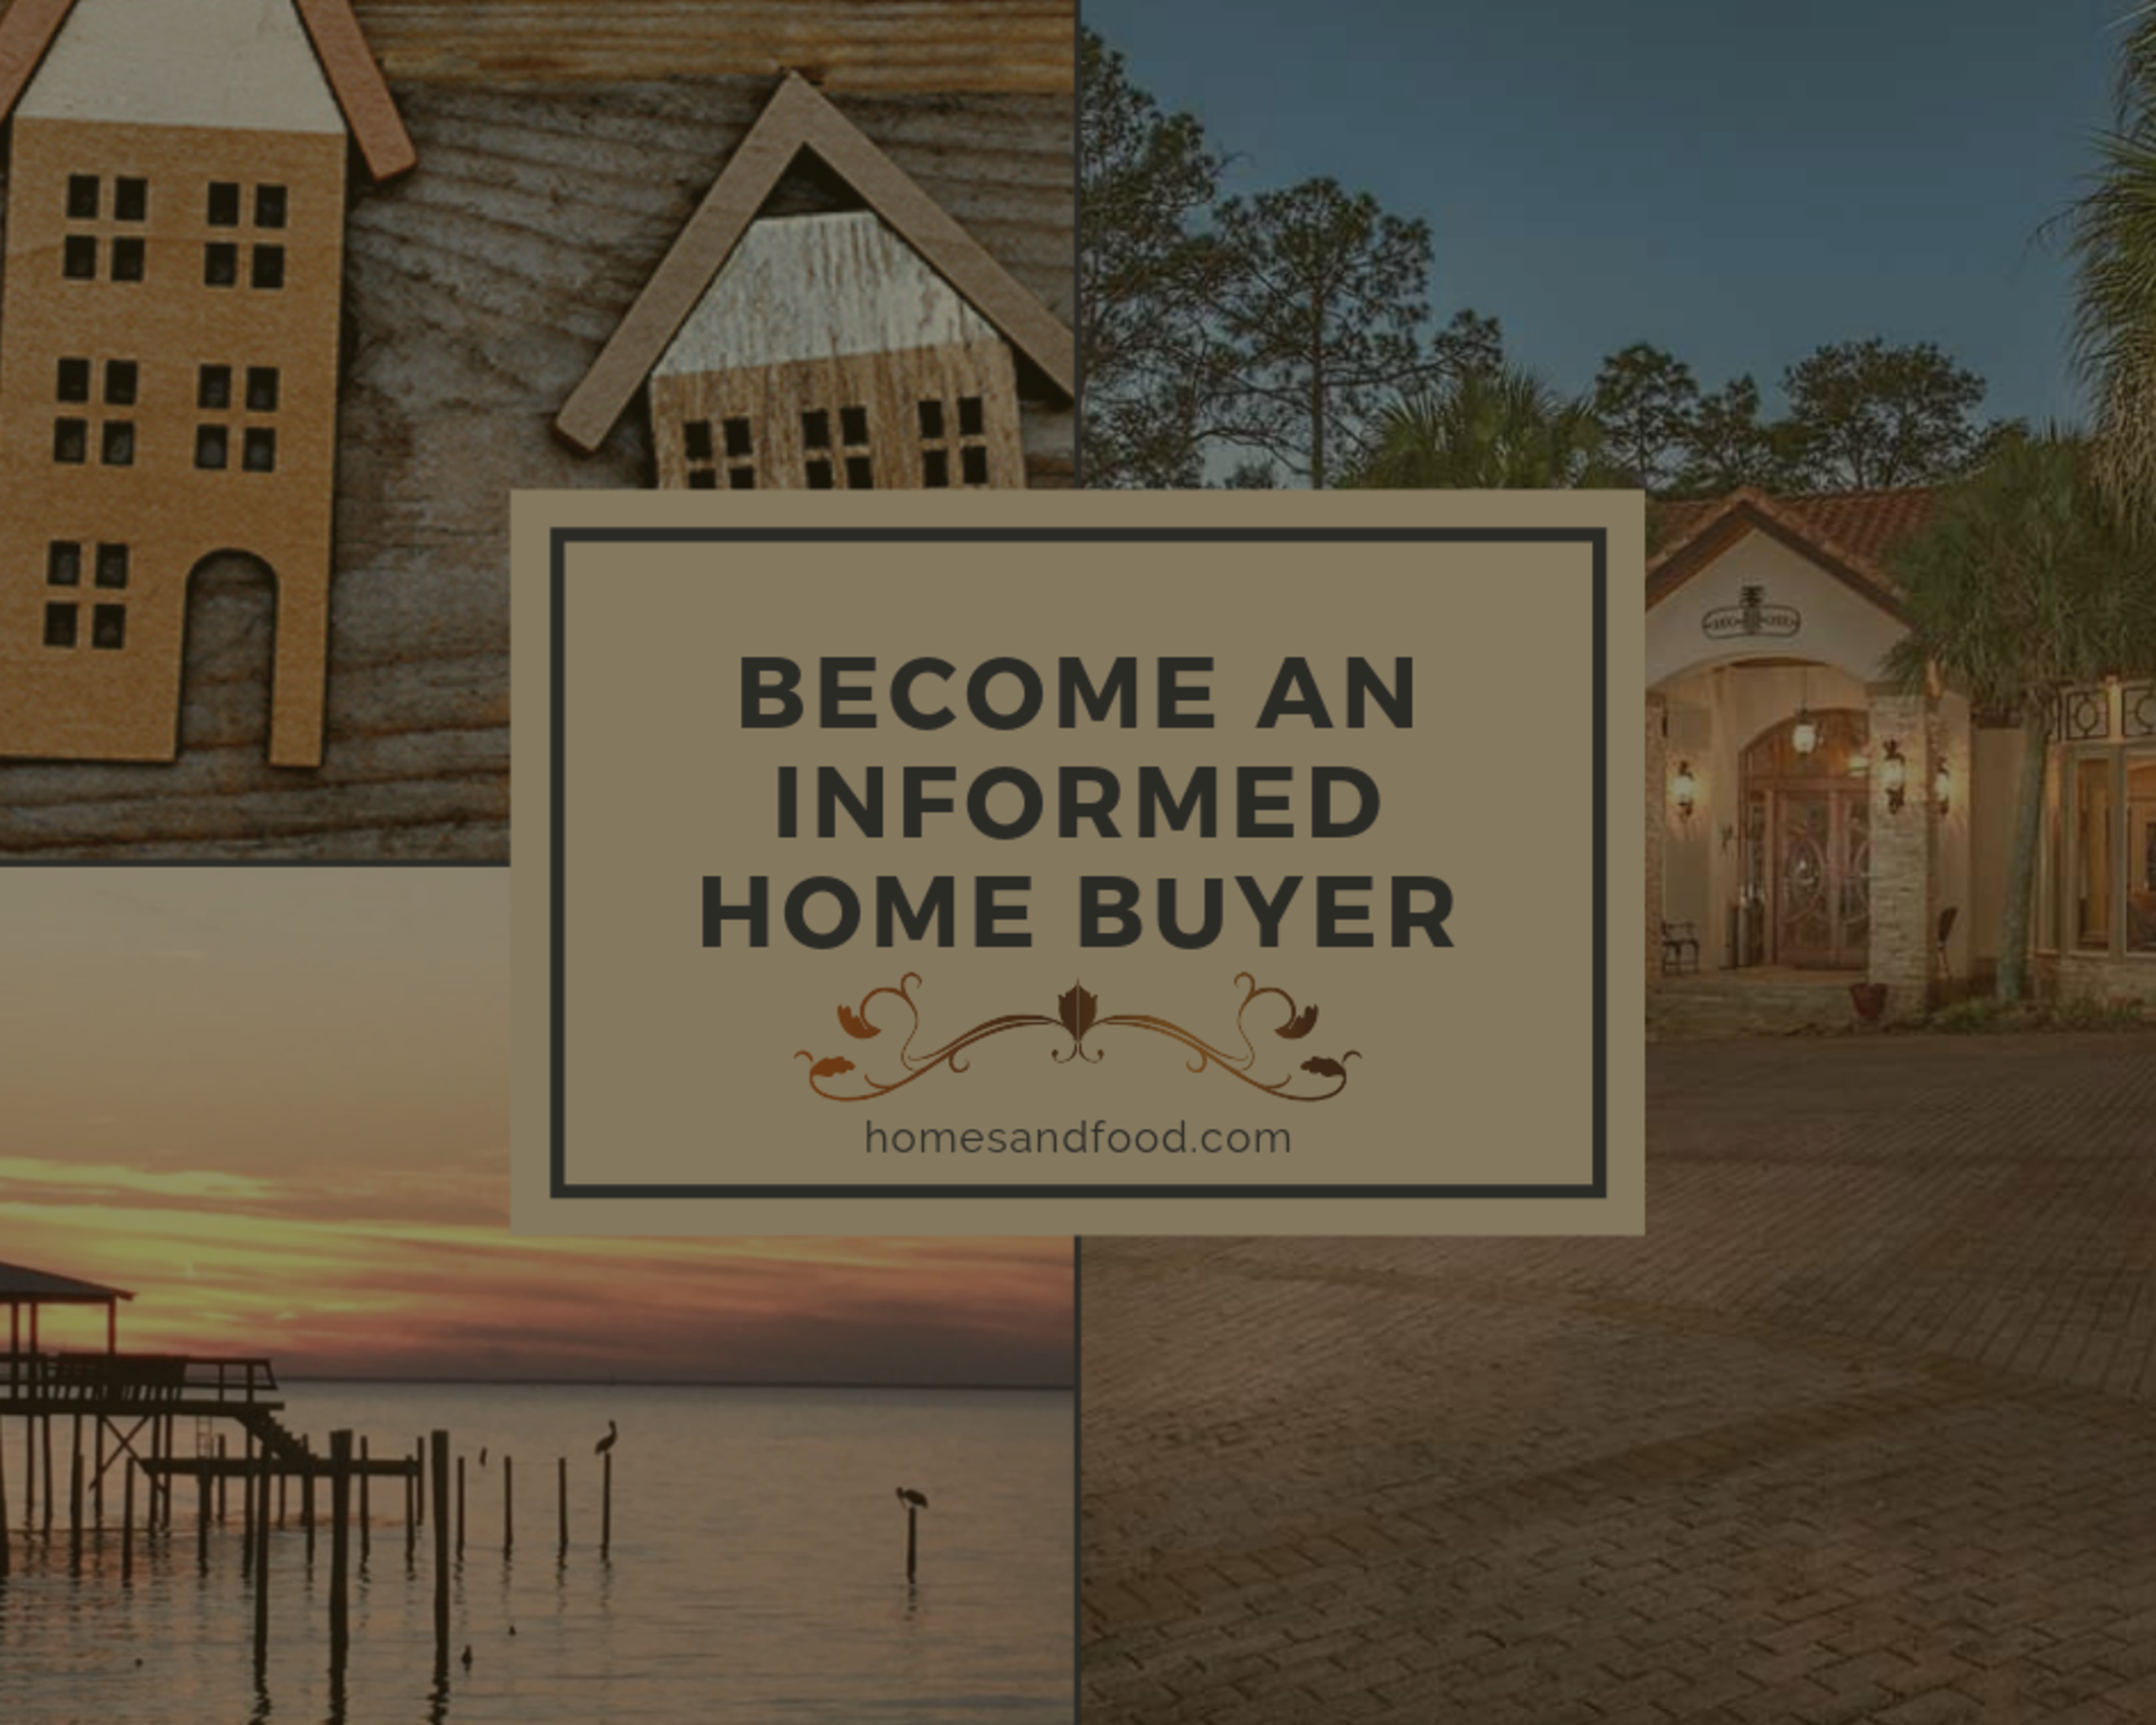 Become an Informed Home Buyer